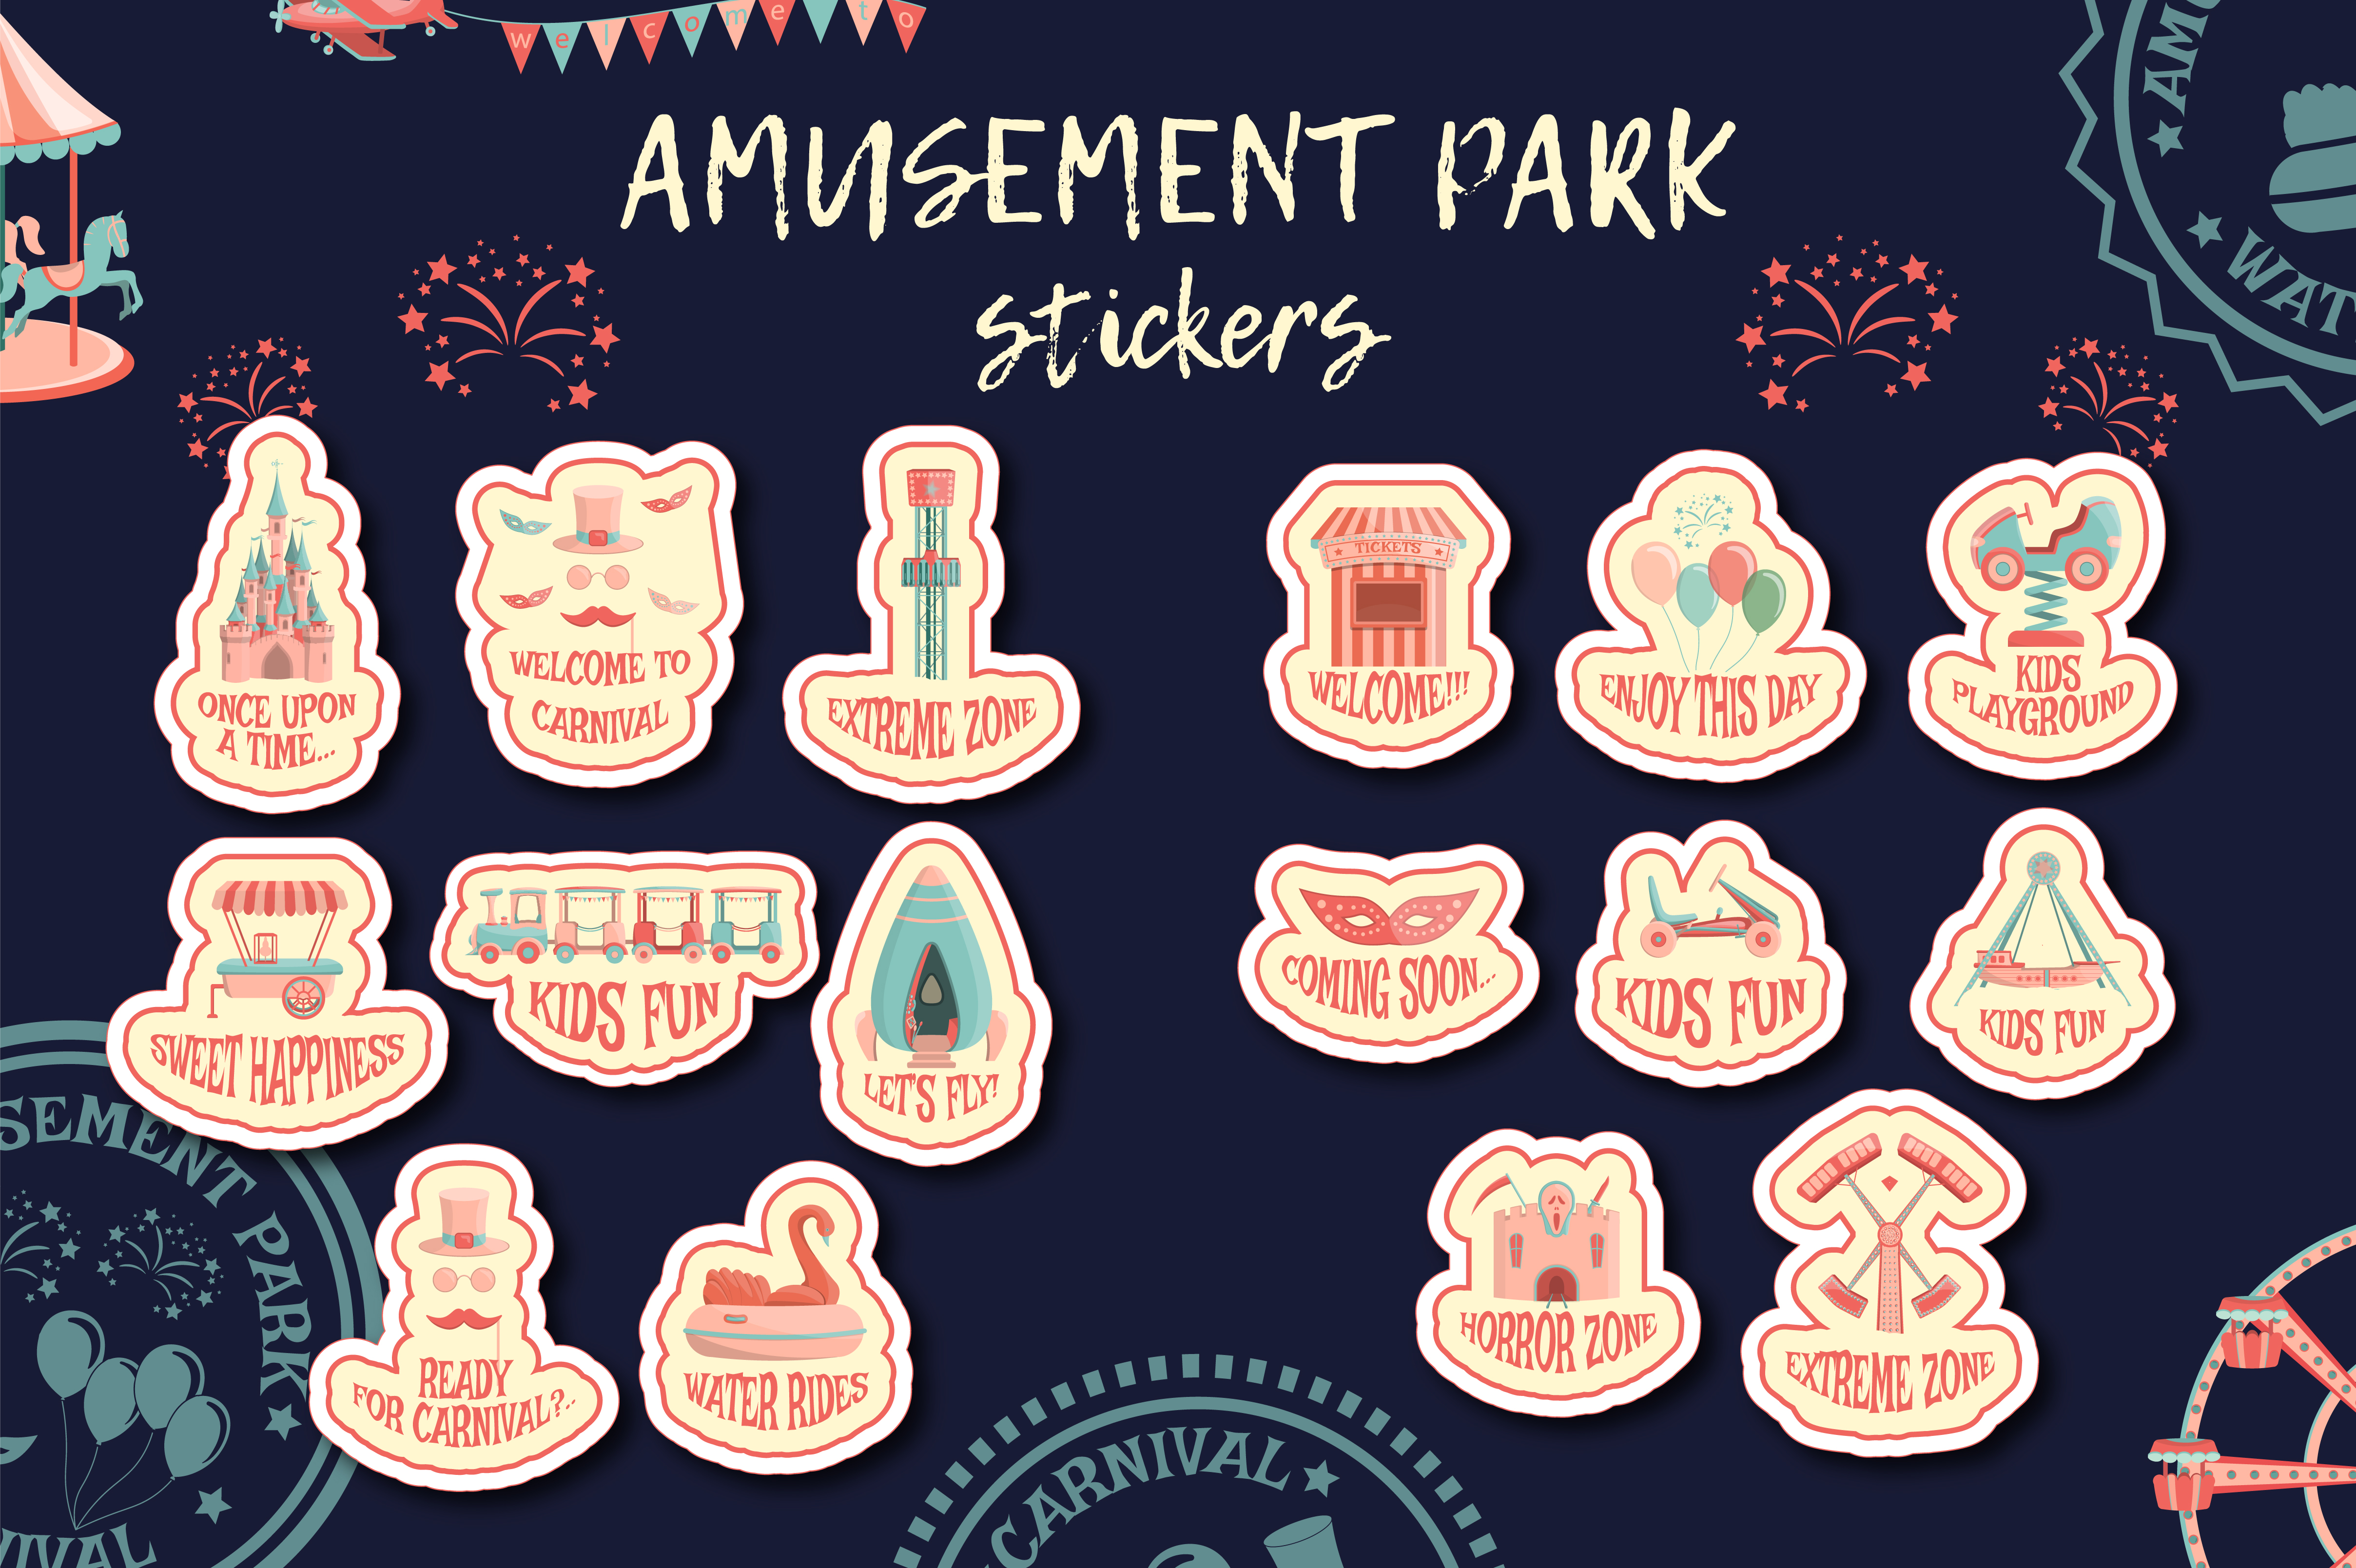 Download Free Amusement Park Stickers Collection Graphic By Butus Cm for Cricut Explore, Silhouette and other cutting machines.